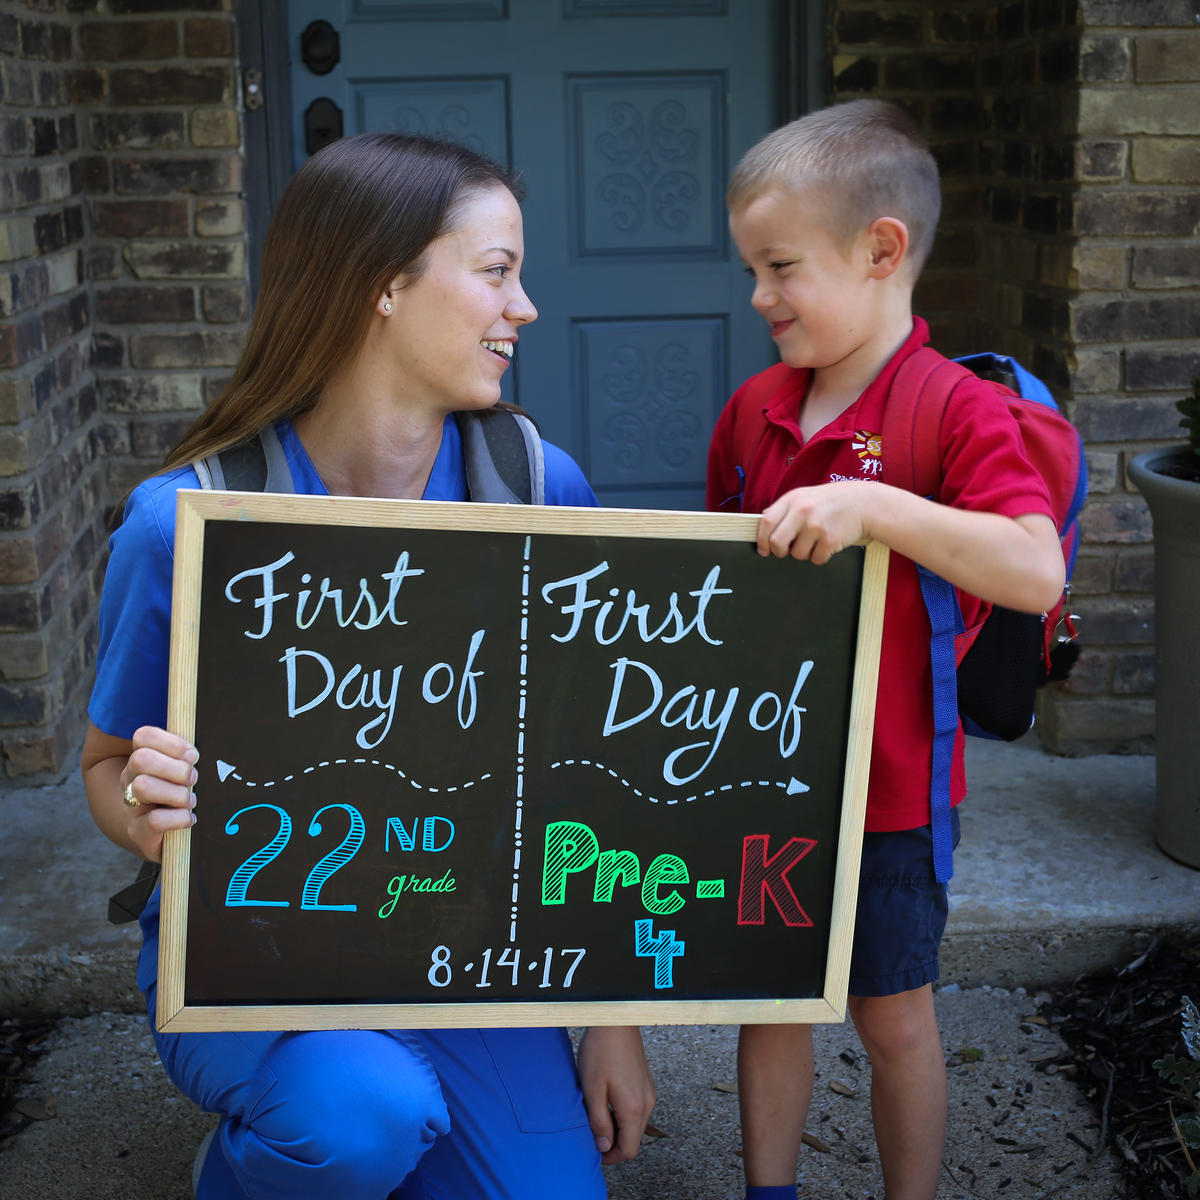 This Mother-Son Back-to-School Photo is the Cutest Thing You'll See Today